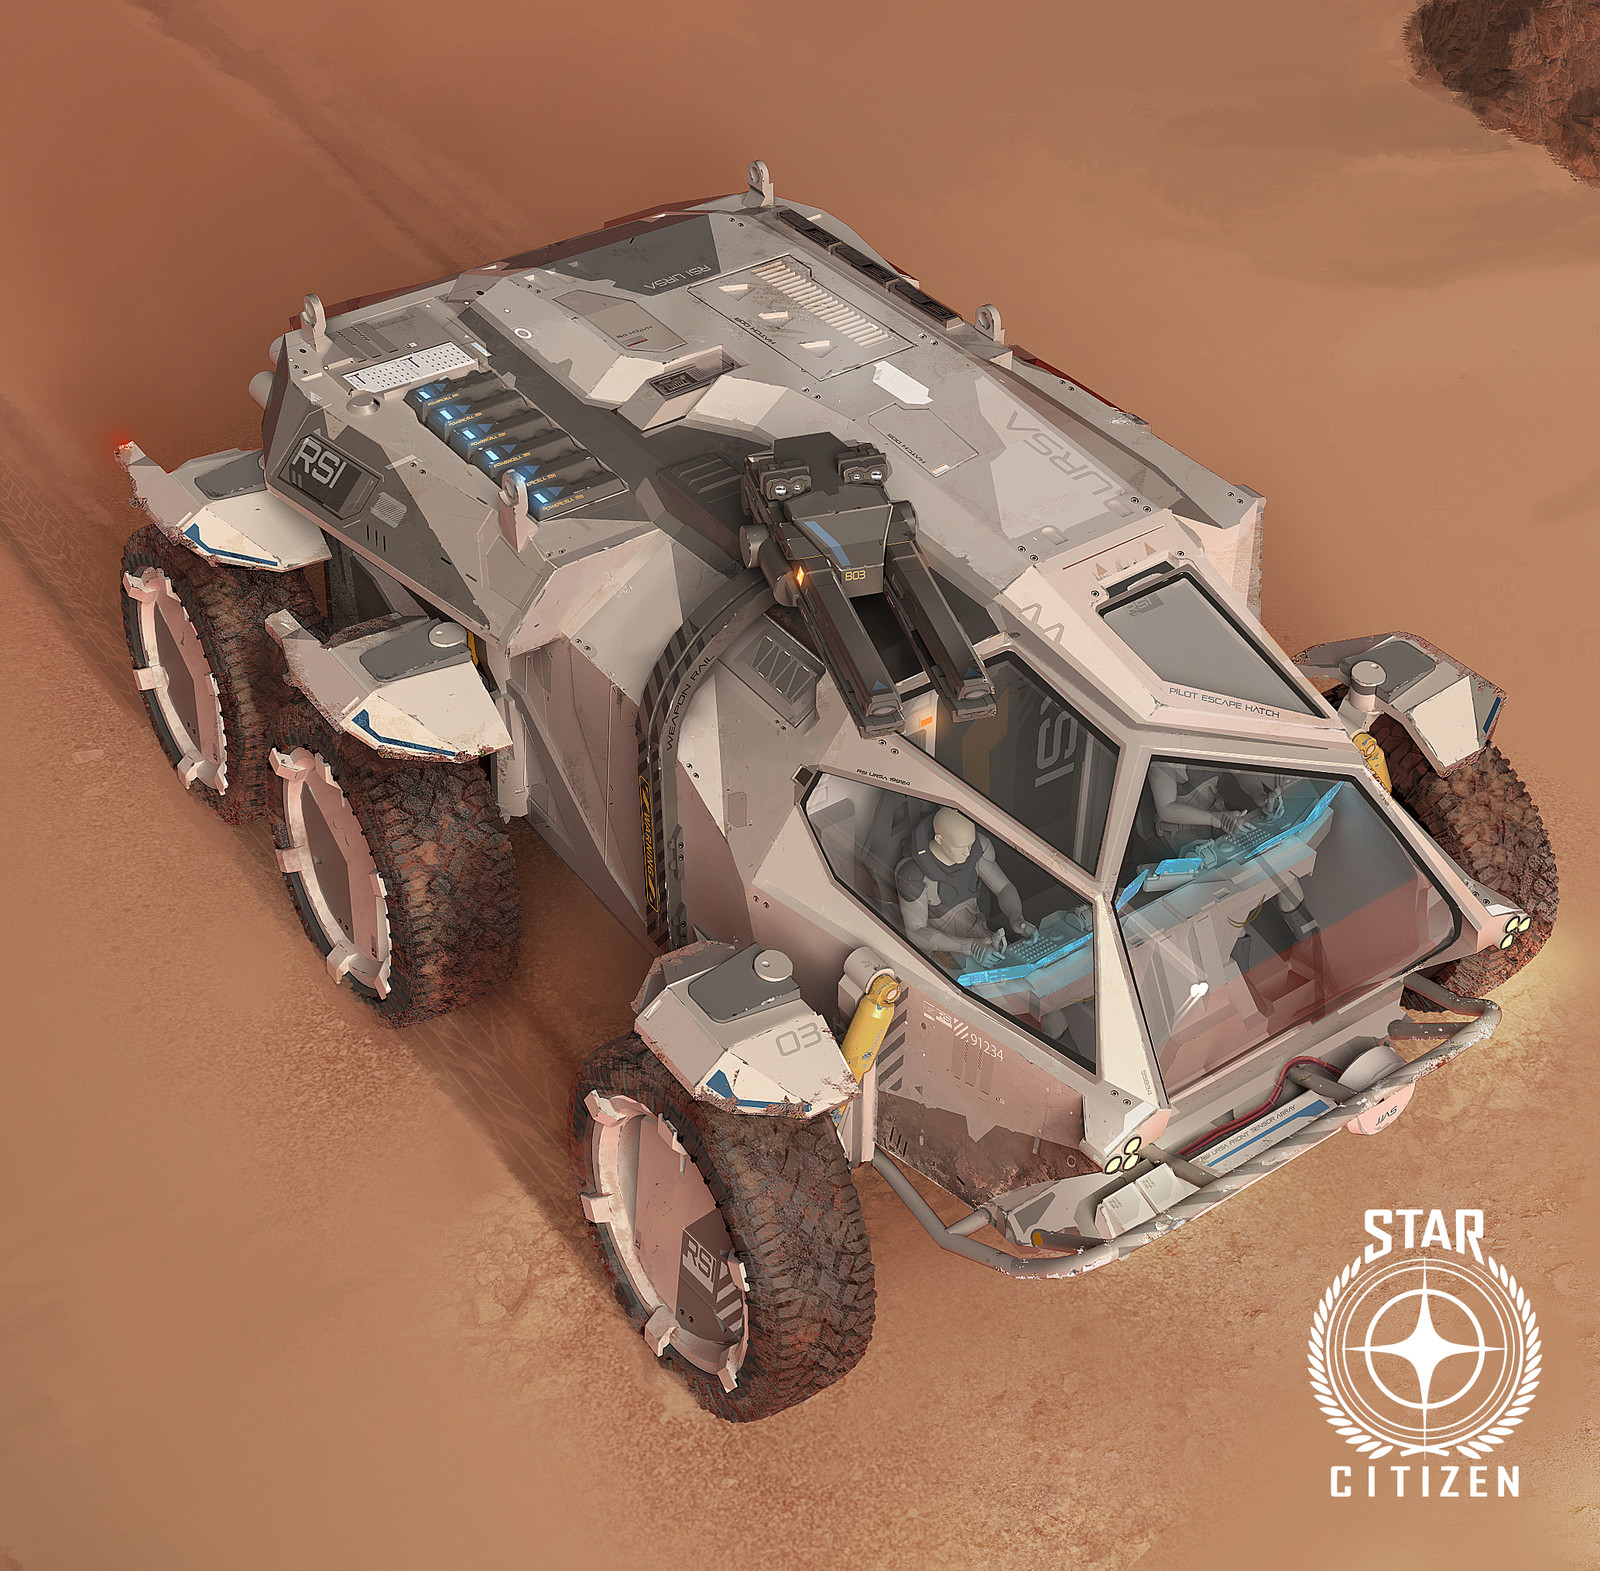 Star Citizen, RSI rover concept